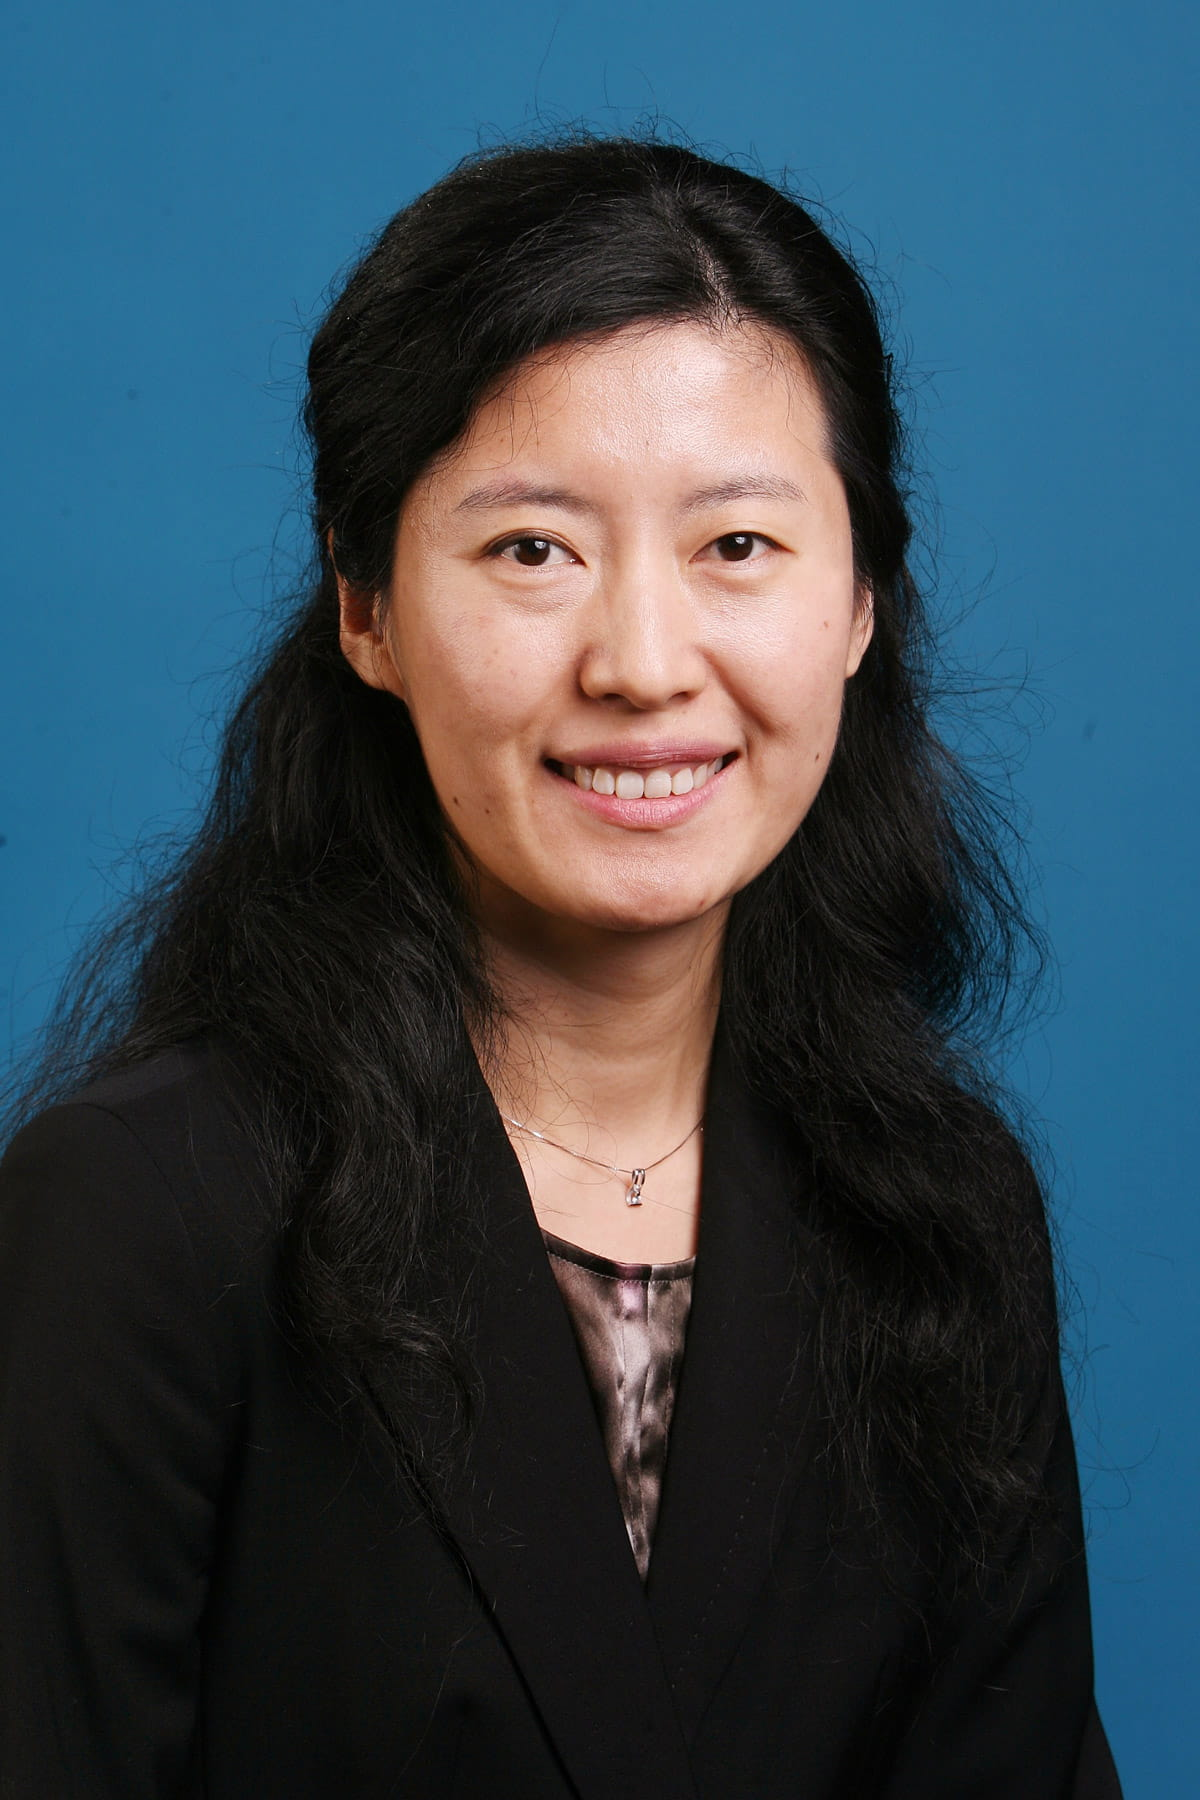 A photo of Wenying Zhang, MD, PhD.